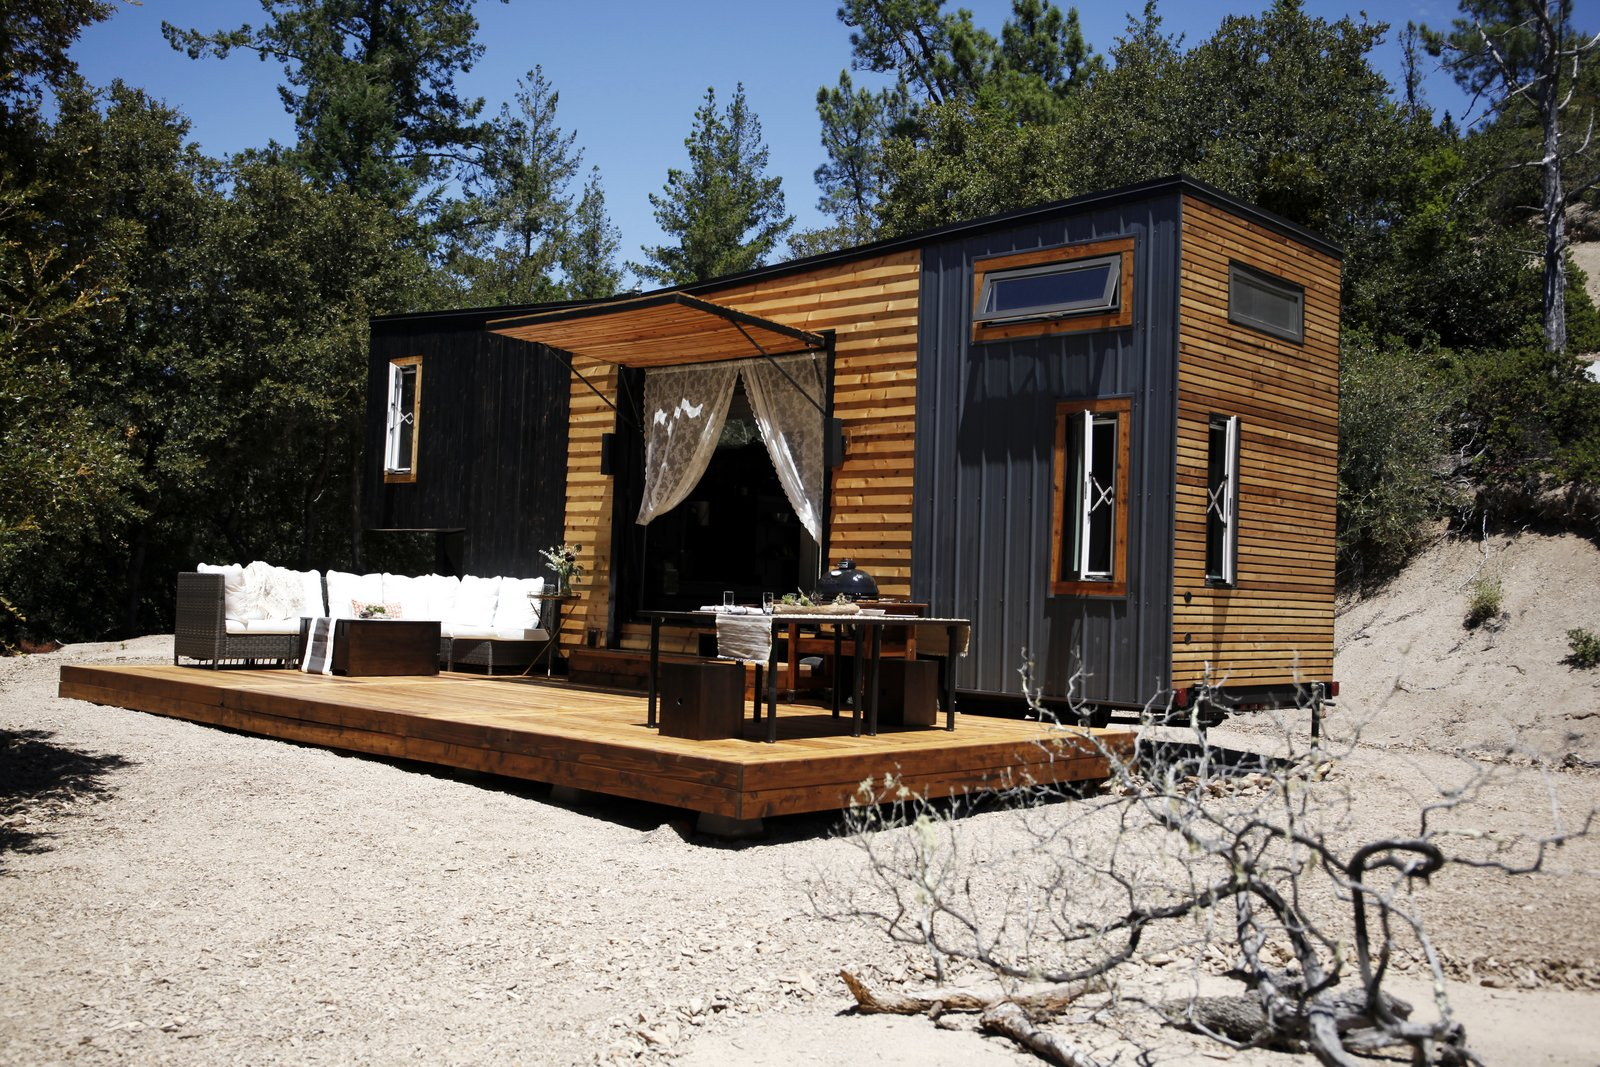 Exterior, Metal, Small Home, Wood, Tiny Home, Flat, and Metal Fishbeyn and Wright love that their home is set in a natural landscape with an incredible mountain view.      Best Exterior Metal Wood Flat Tiny Home Metal Photos from A California Couple Customize Their Tiny Home With Multi-Layered Interiors